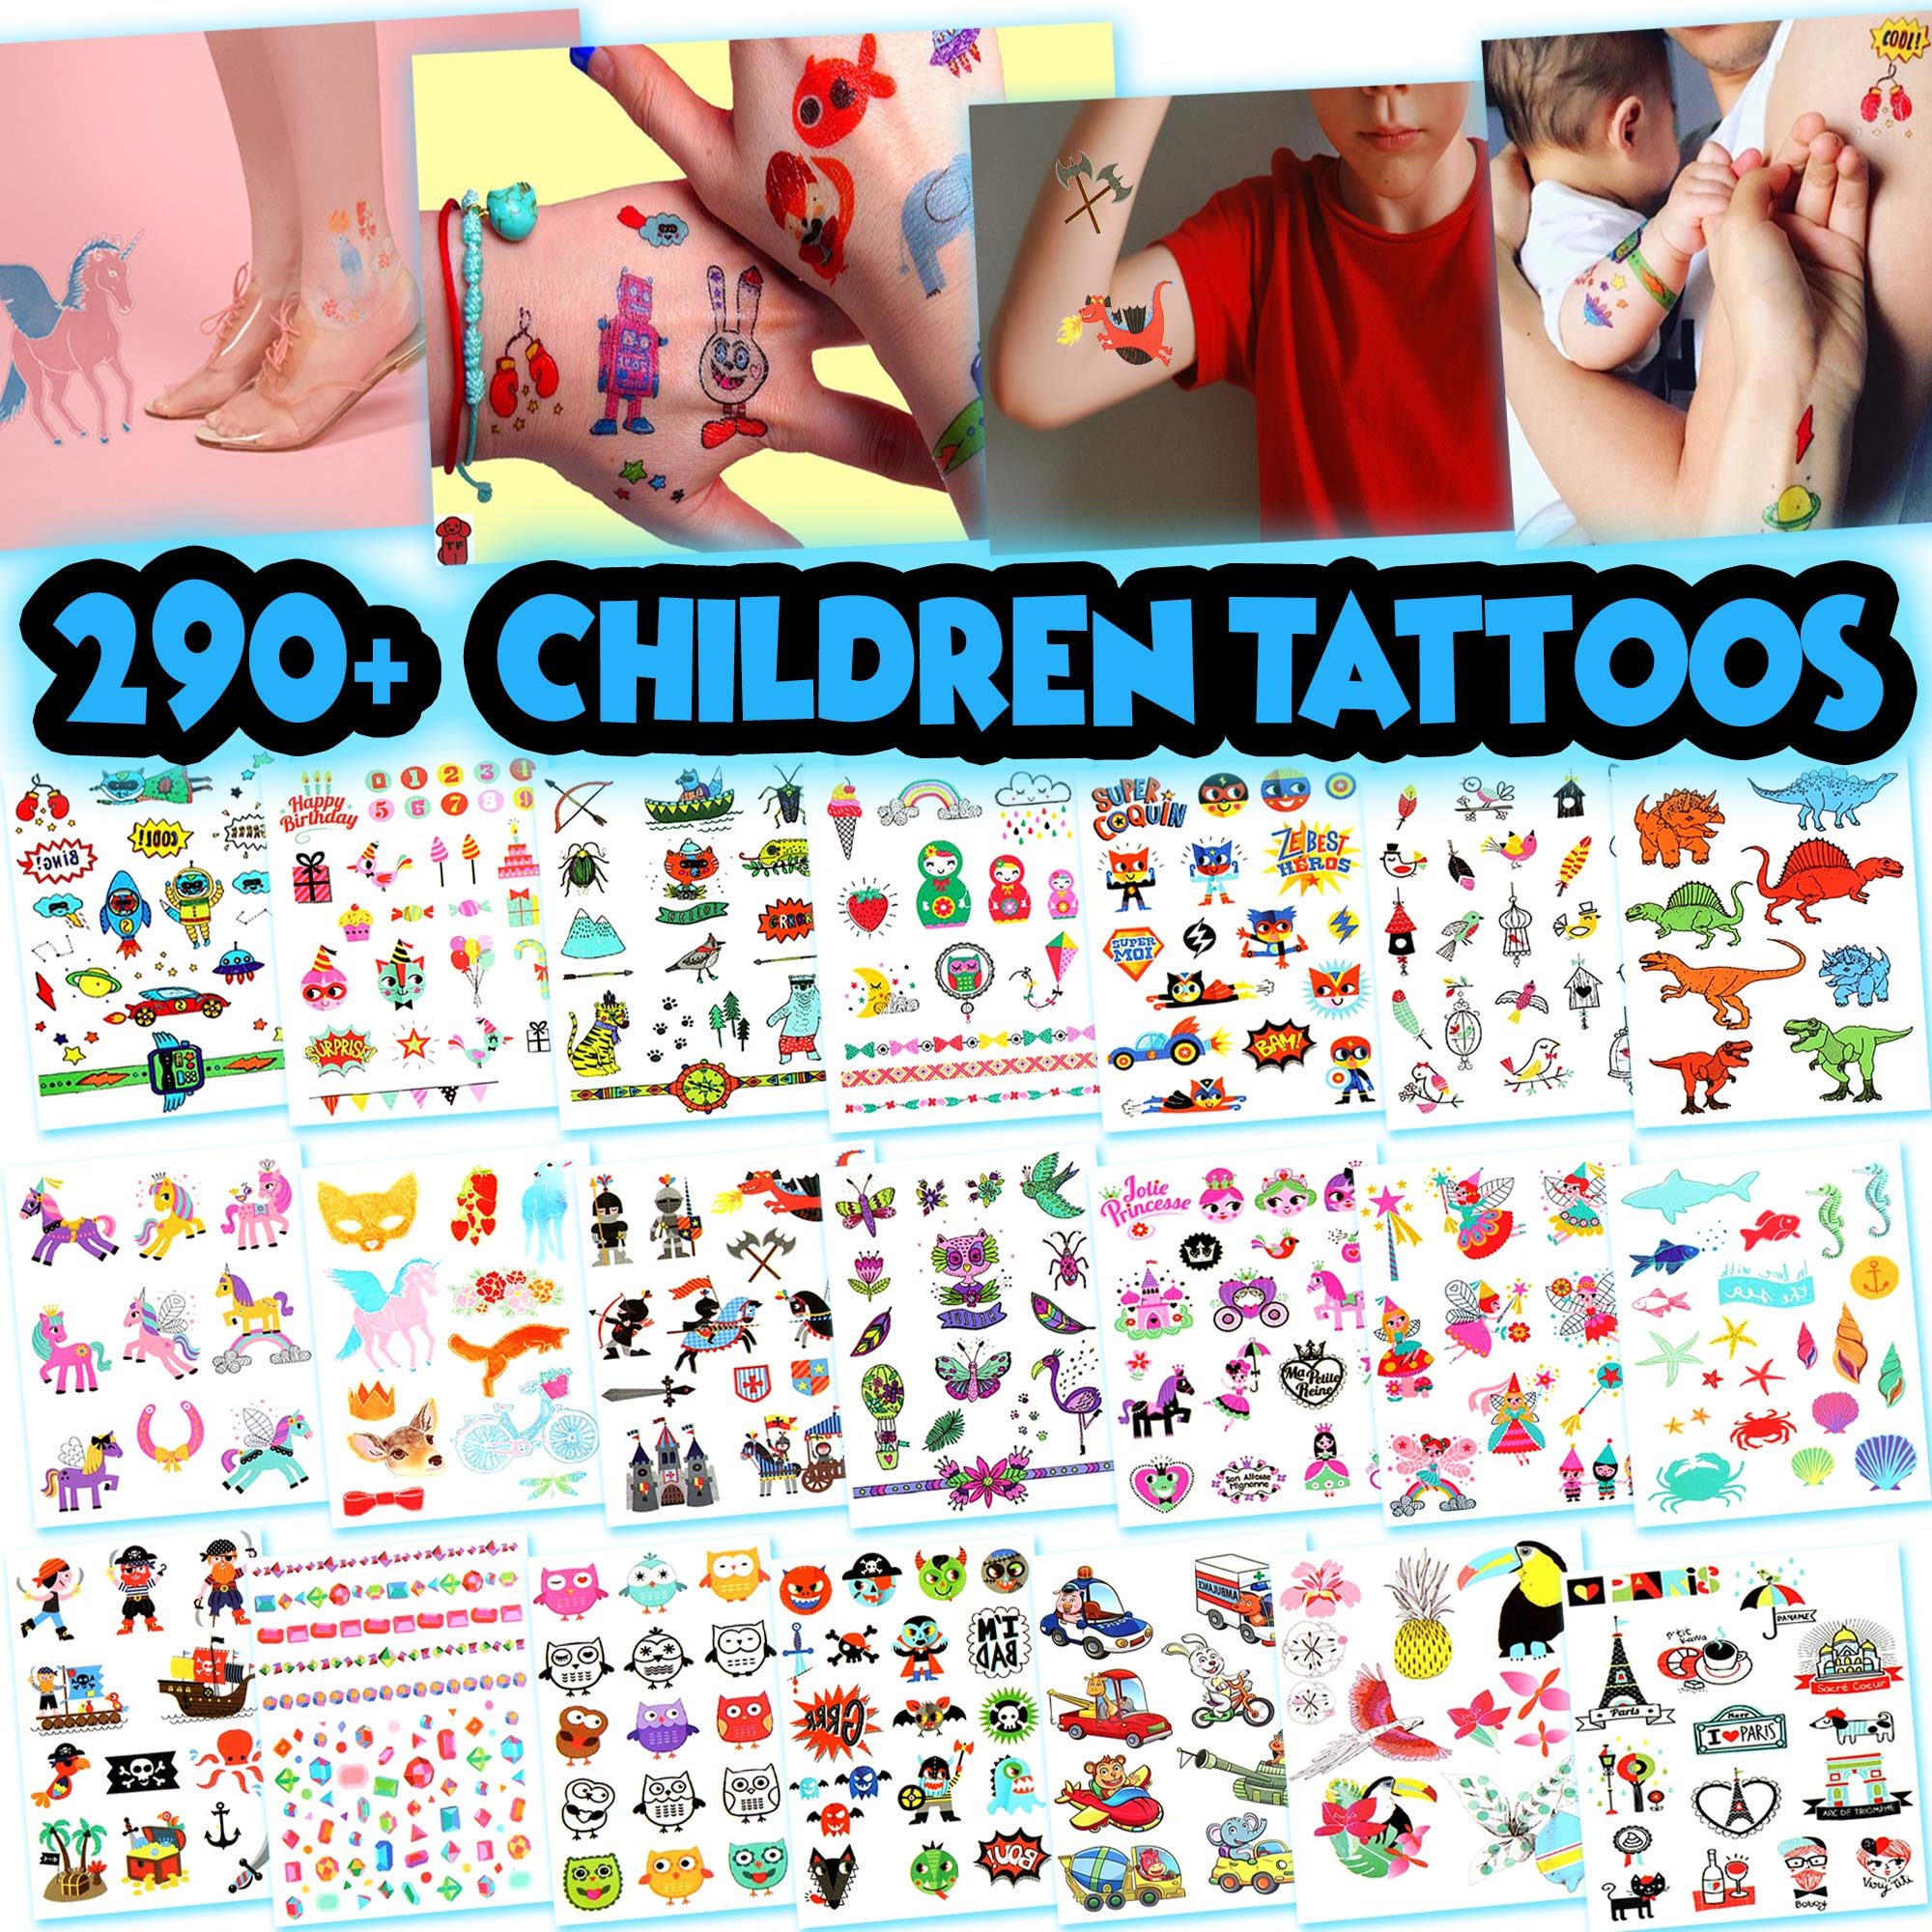 Kids Temporary Tattoos - More Than 290 Easy-to-Use Tattoos for Children (Assorted - 21 Sheets)